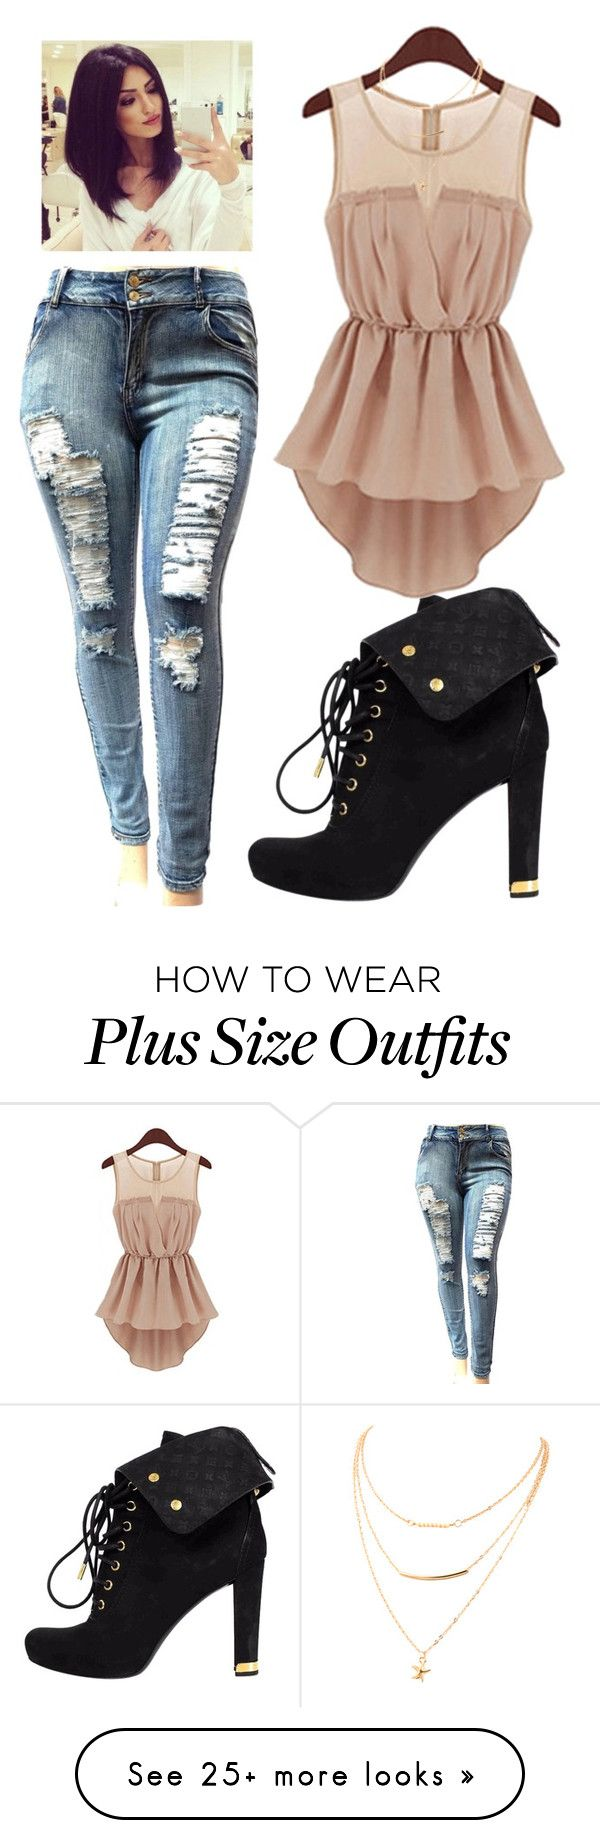 """Untitled #2158"" by mikaelaryan on Polyvore featuring Louis Vuitton"